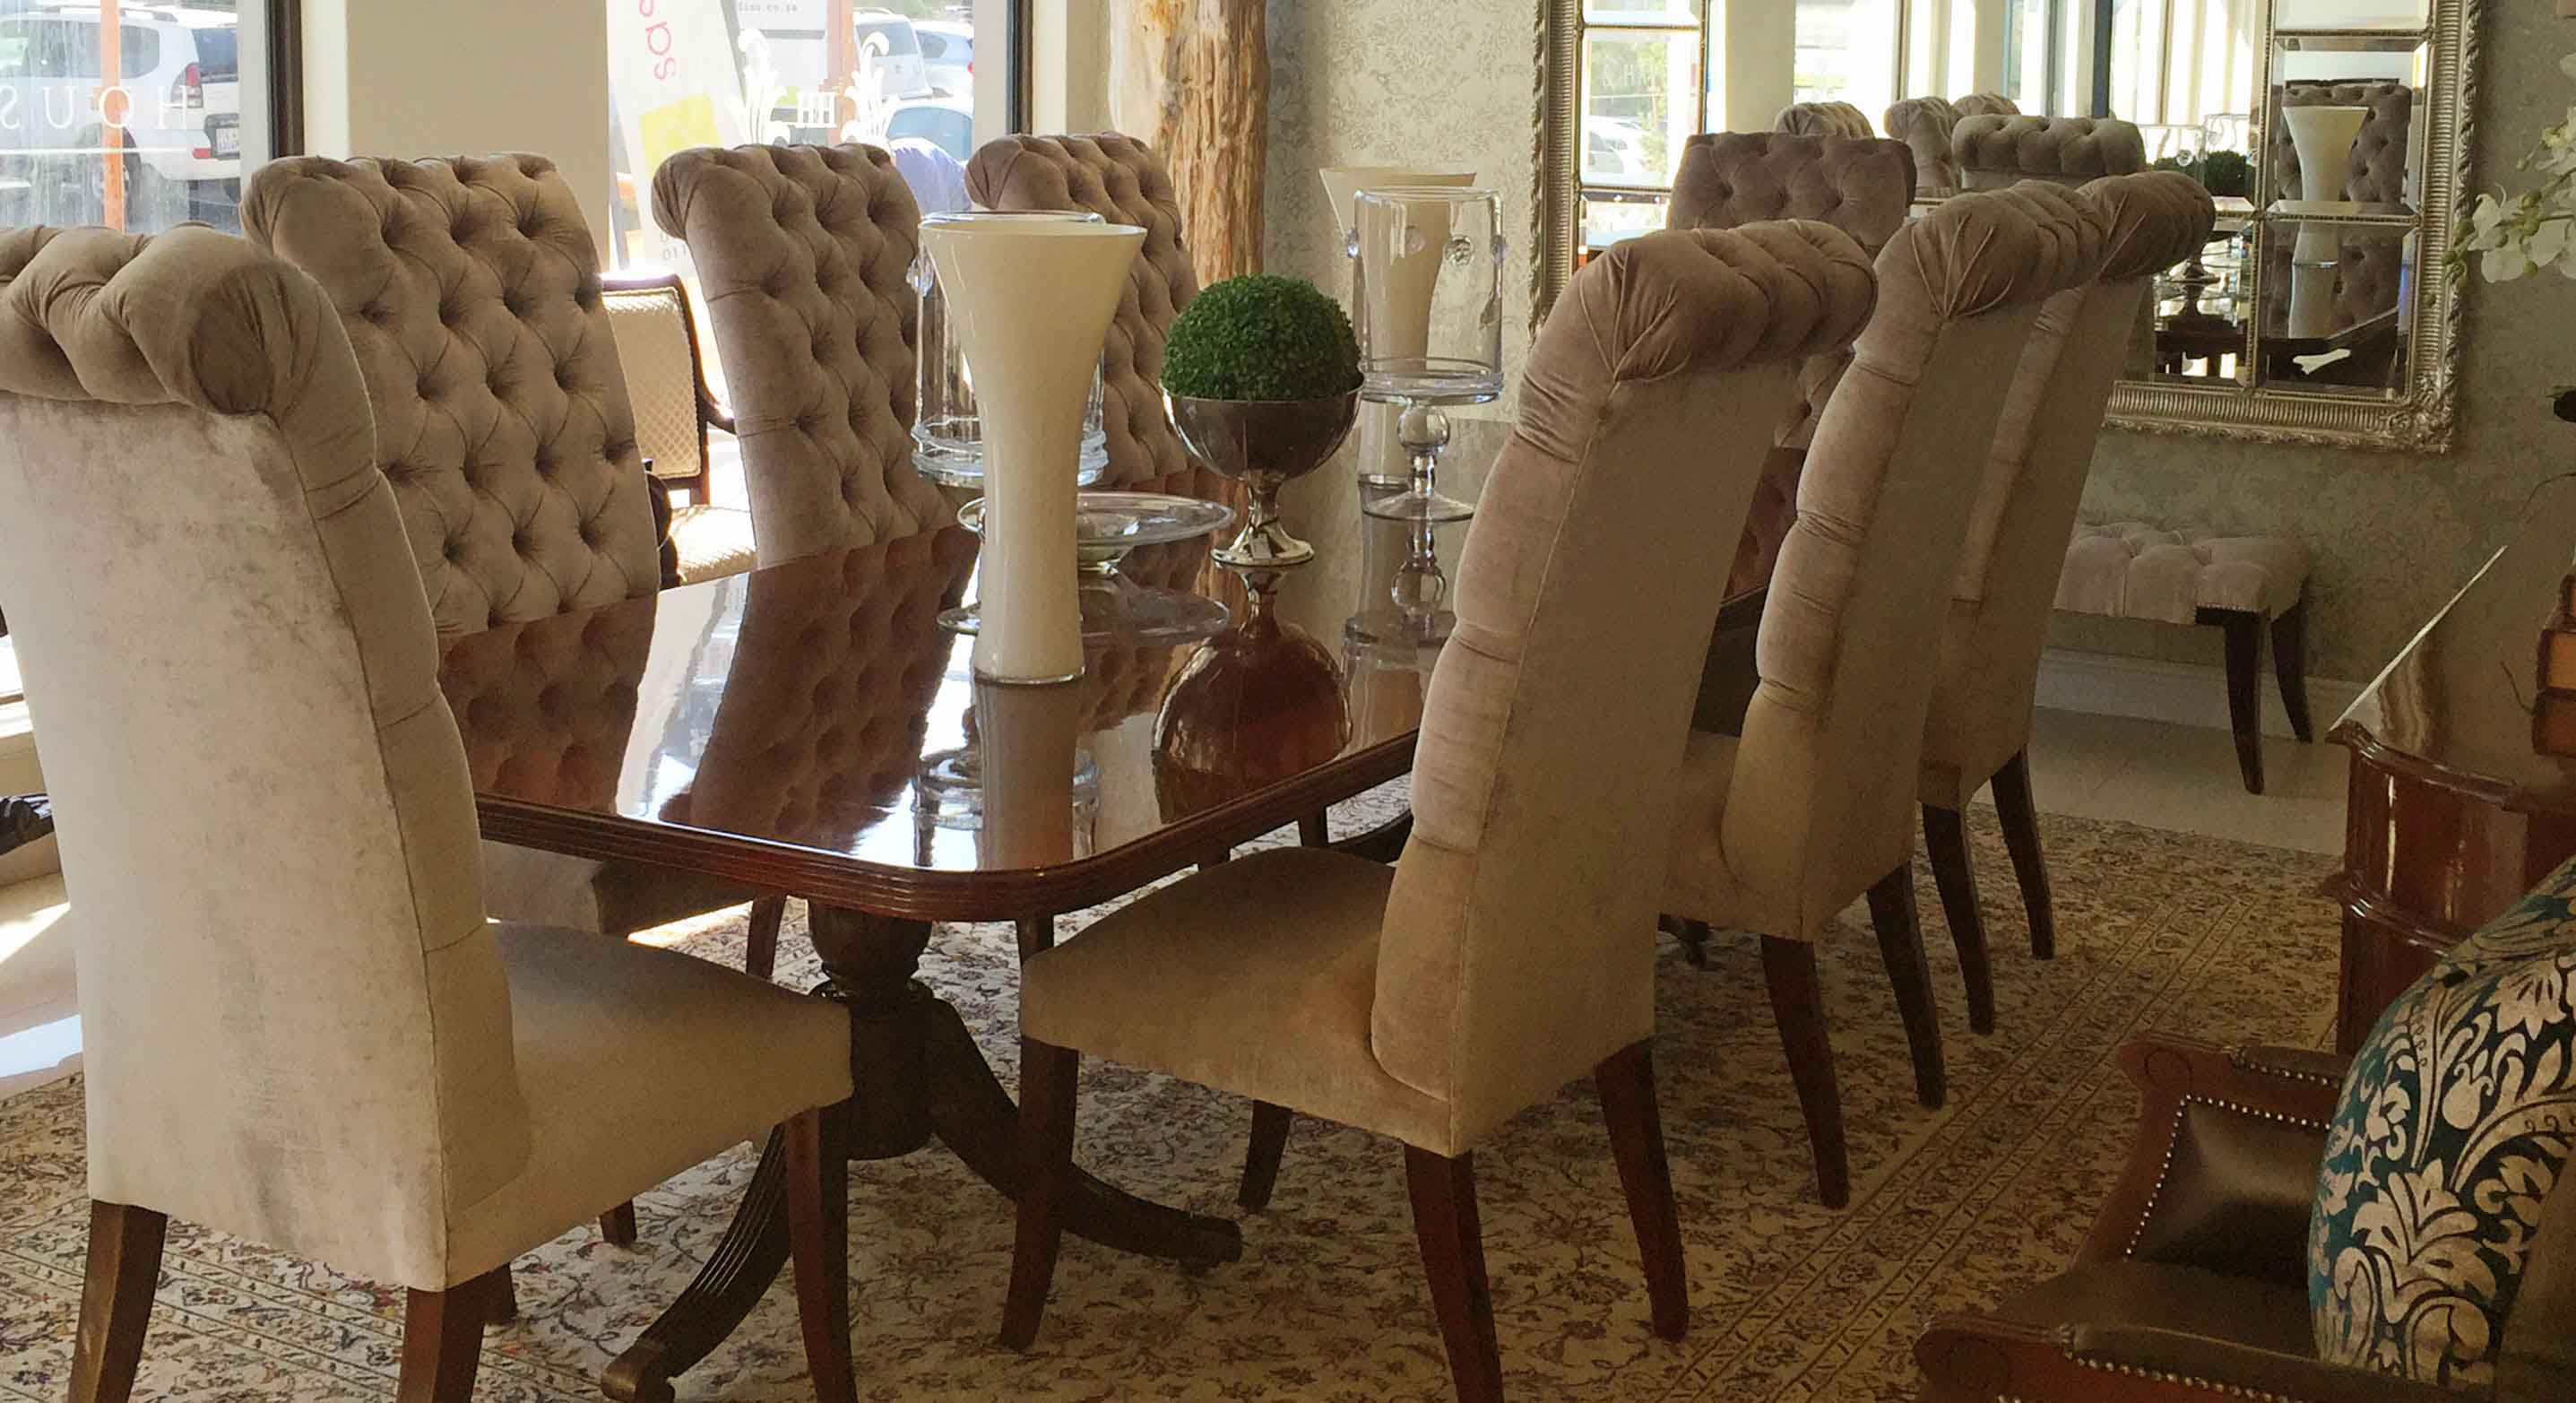 Home – House & Haven Regarding Haven Sofa Chairs (View 20 of 25)